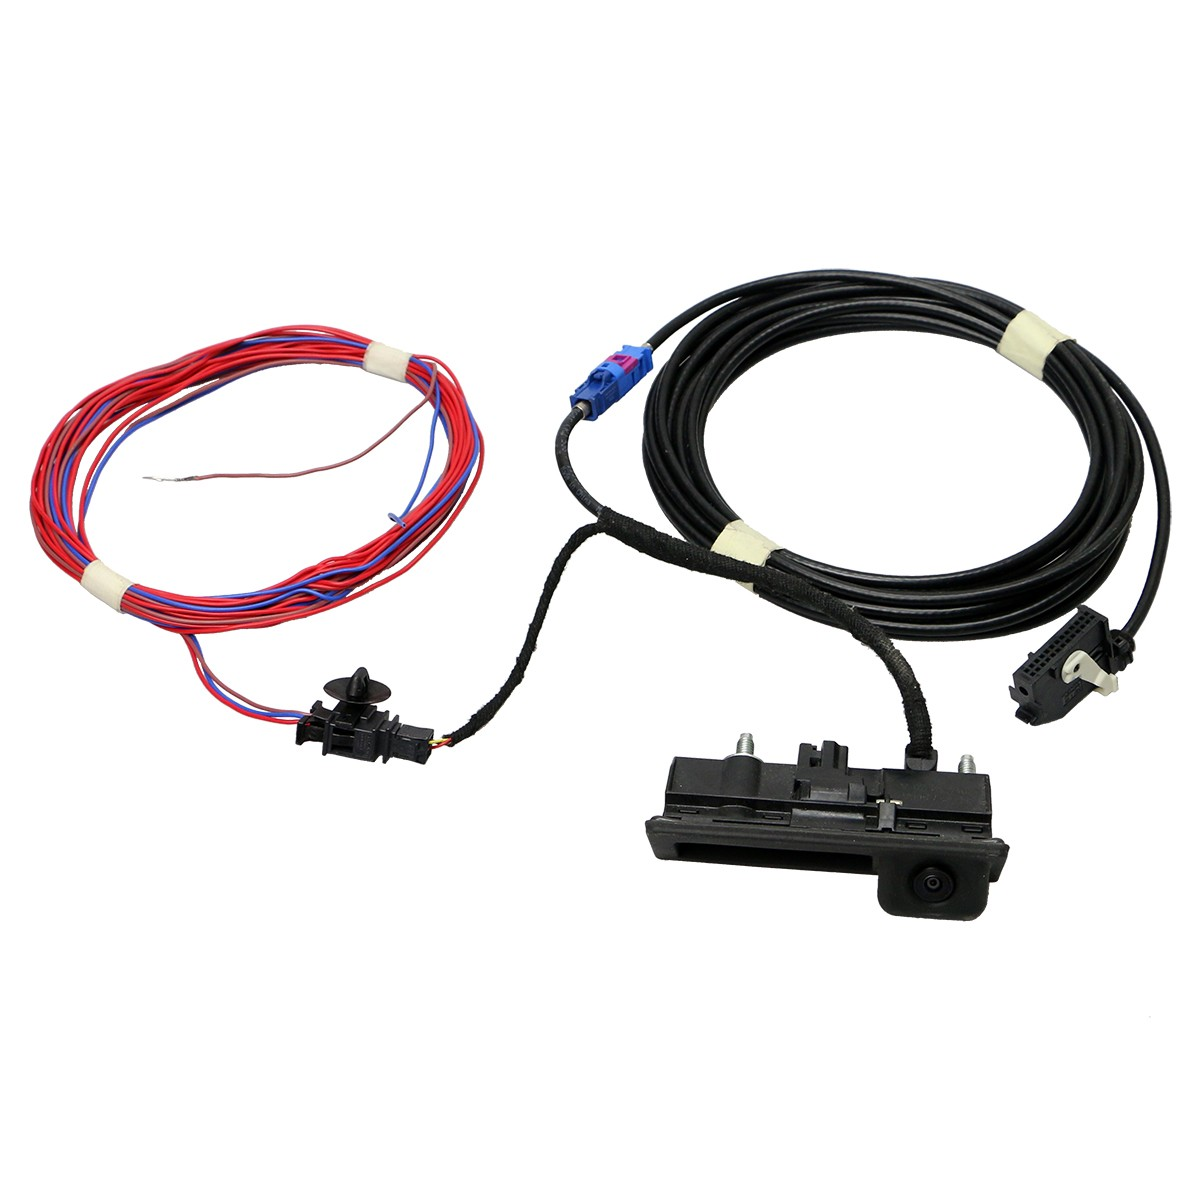 Oem Rgb Rear View Camera And Wire Harness Set For Vw Rcd510 Rns315 Wiring Backup Rns510